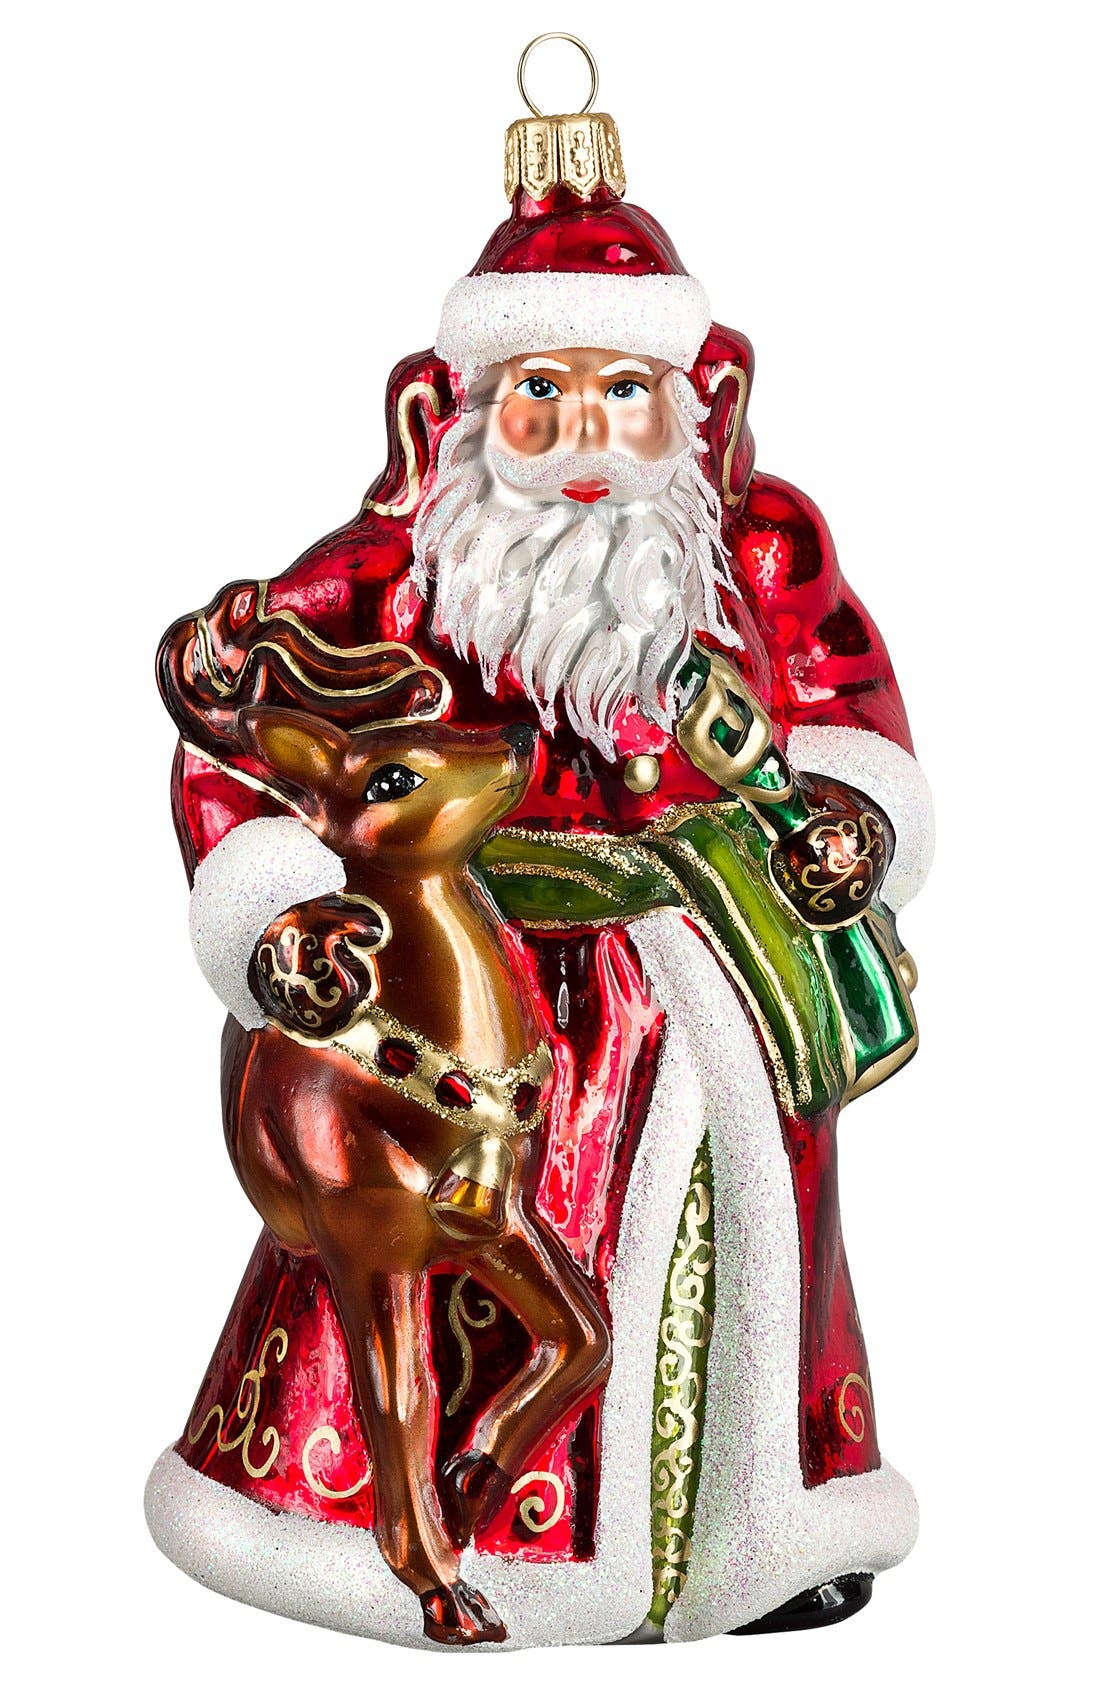 Joy To The World Collectibles Christmas Decorations, Holiday Decor   Nordstrom